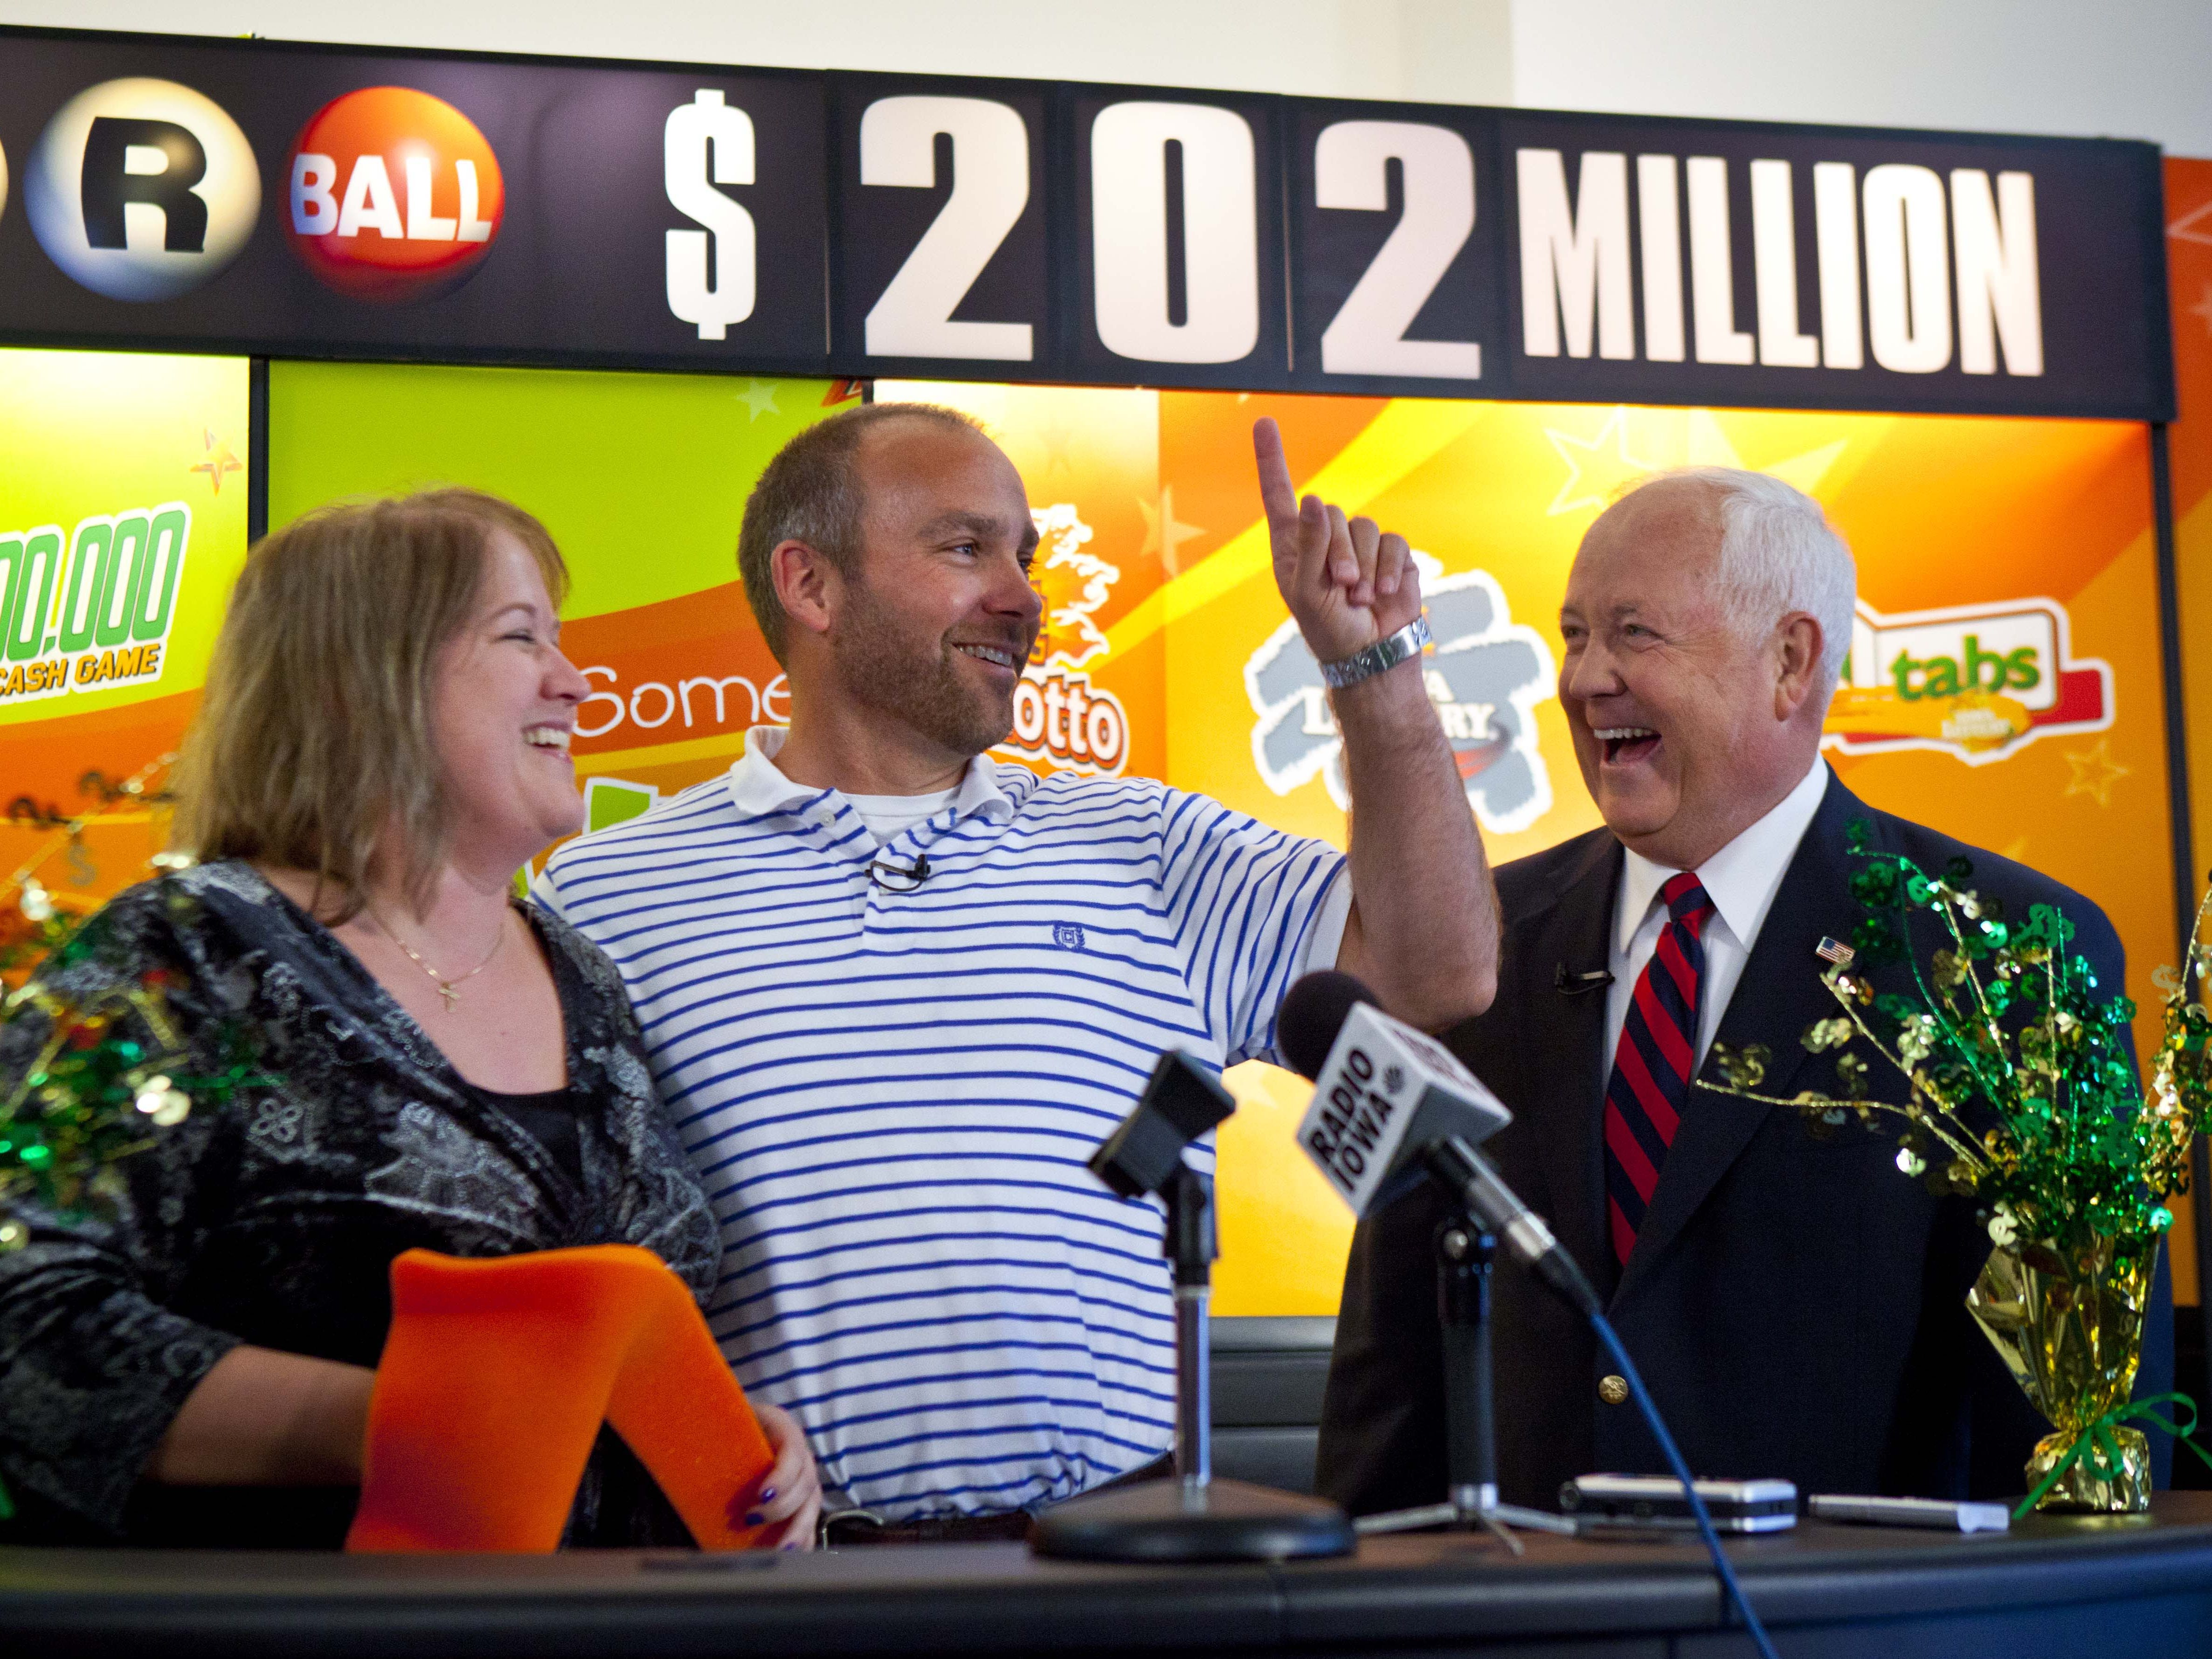 October 2012: Bondurant's Lohse family won a Powerball jackpot prize worth $202.1 million. Iowa Lottery CEO Terry Rich, right, congratulates the winners, Mary, left, and Brian, at a news conference after the couple claimed the prize.